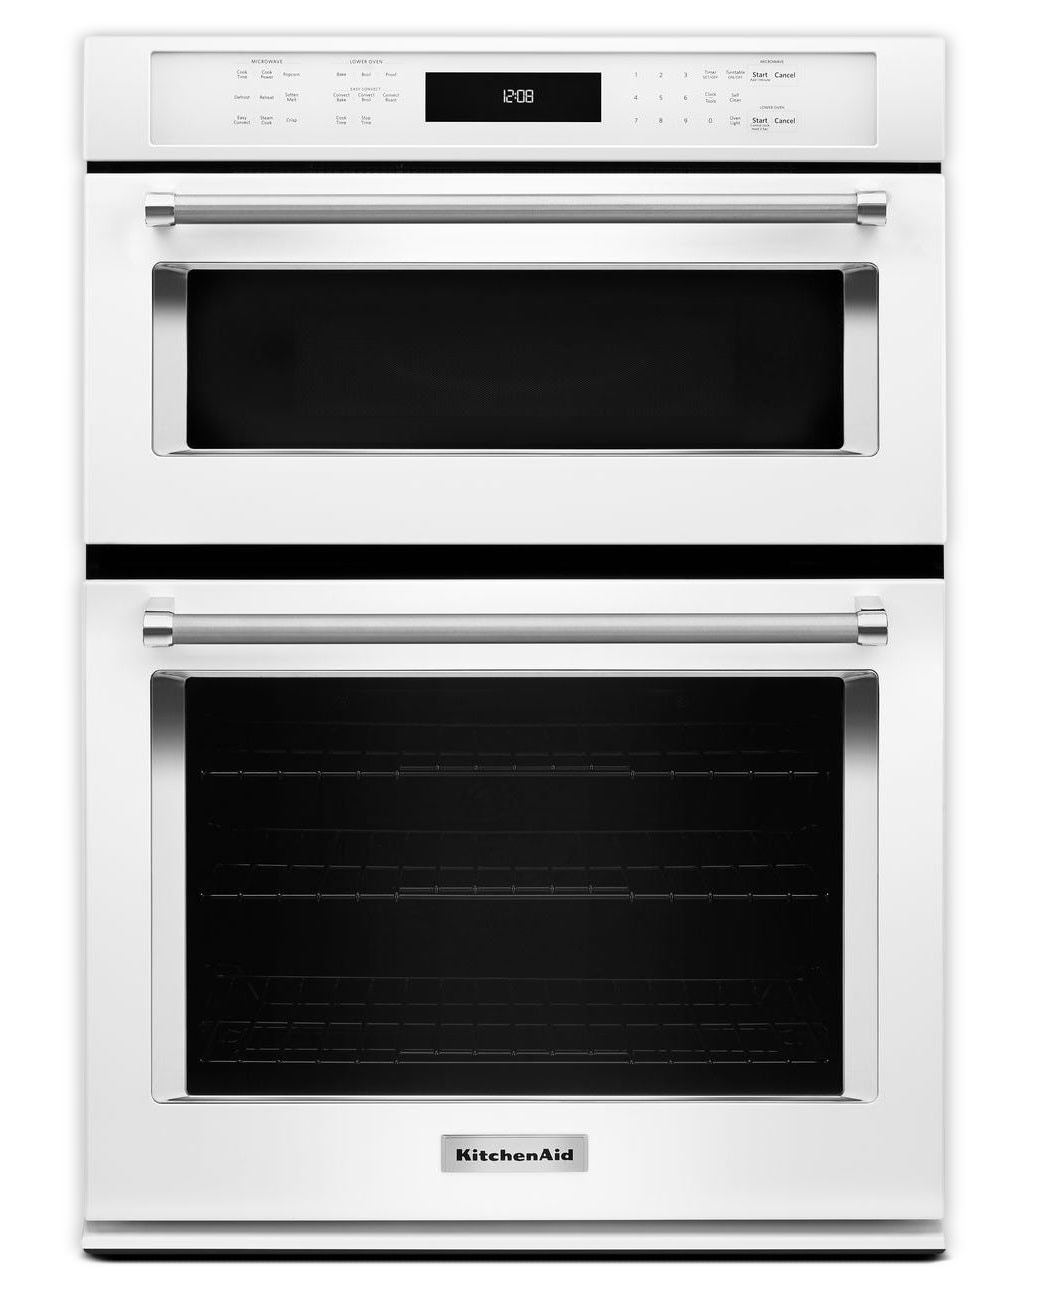 Kitchenaid White Wall Oven 5 Cu Ft W Microwave 1 4